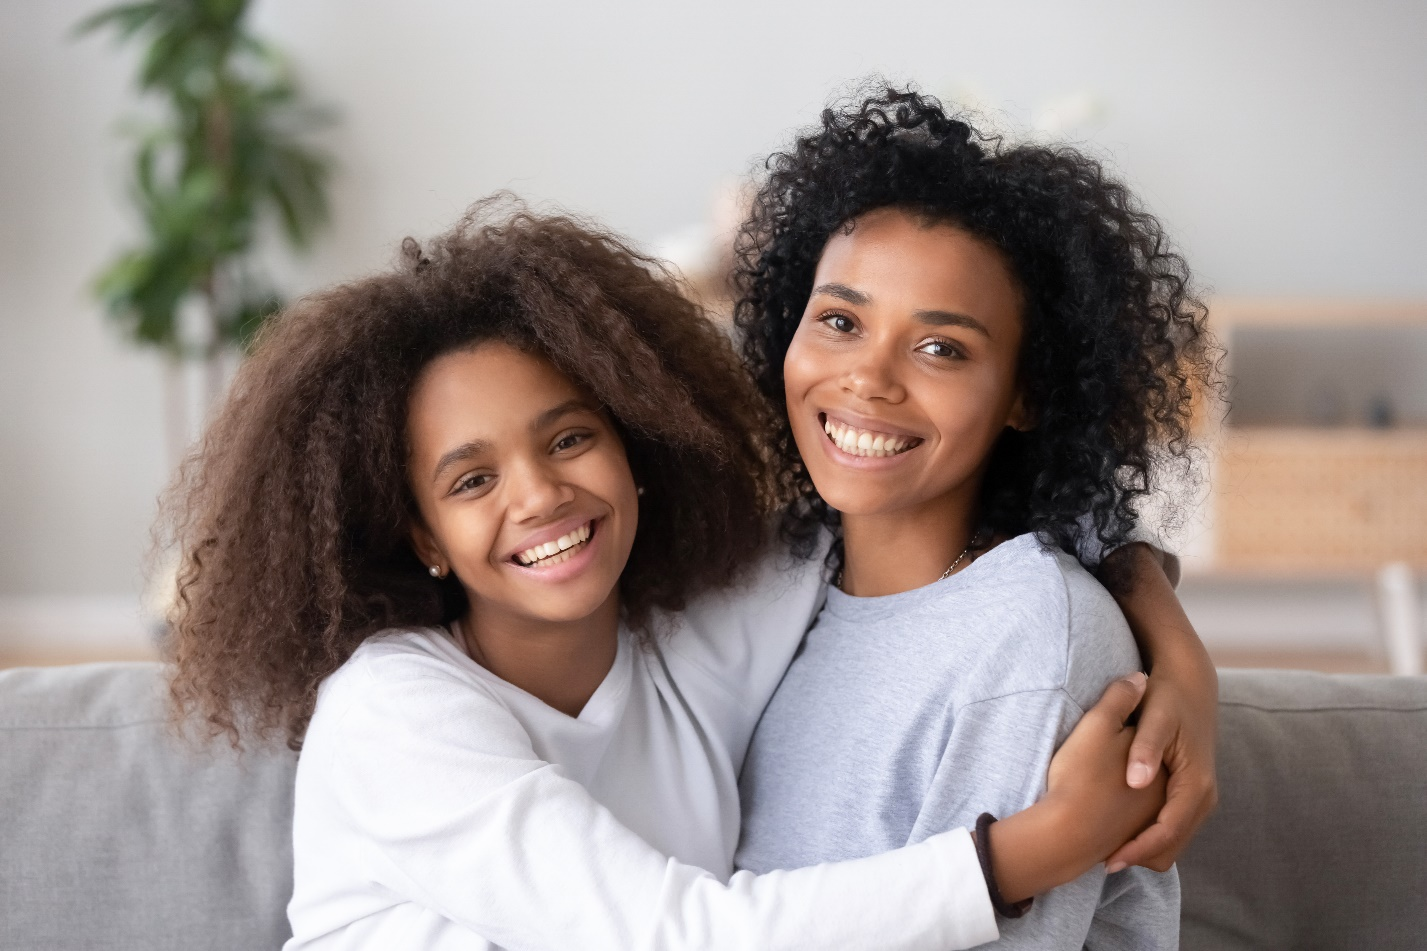 smiling black mixed race mom hug teenage girl bonding posing for portrait